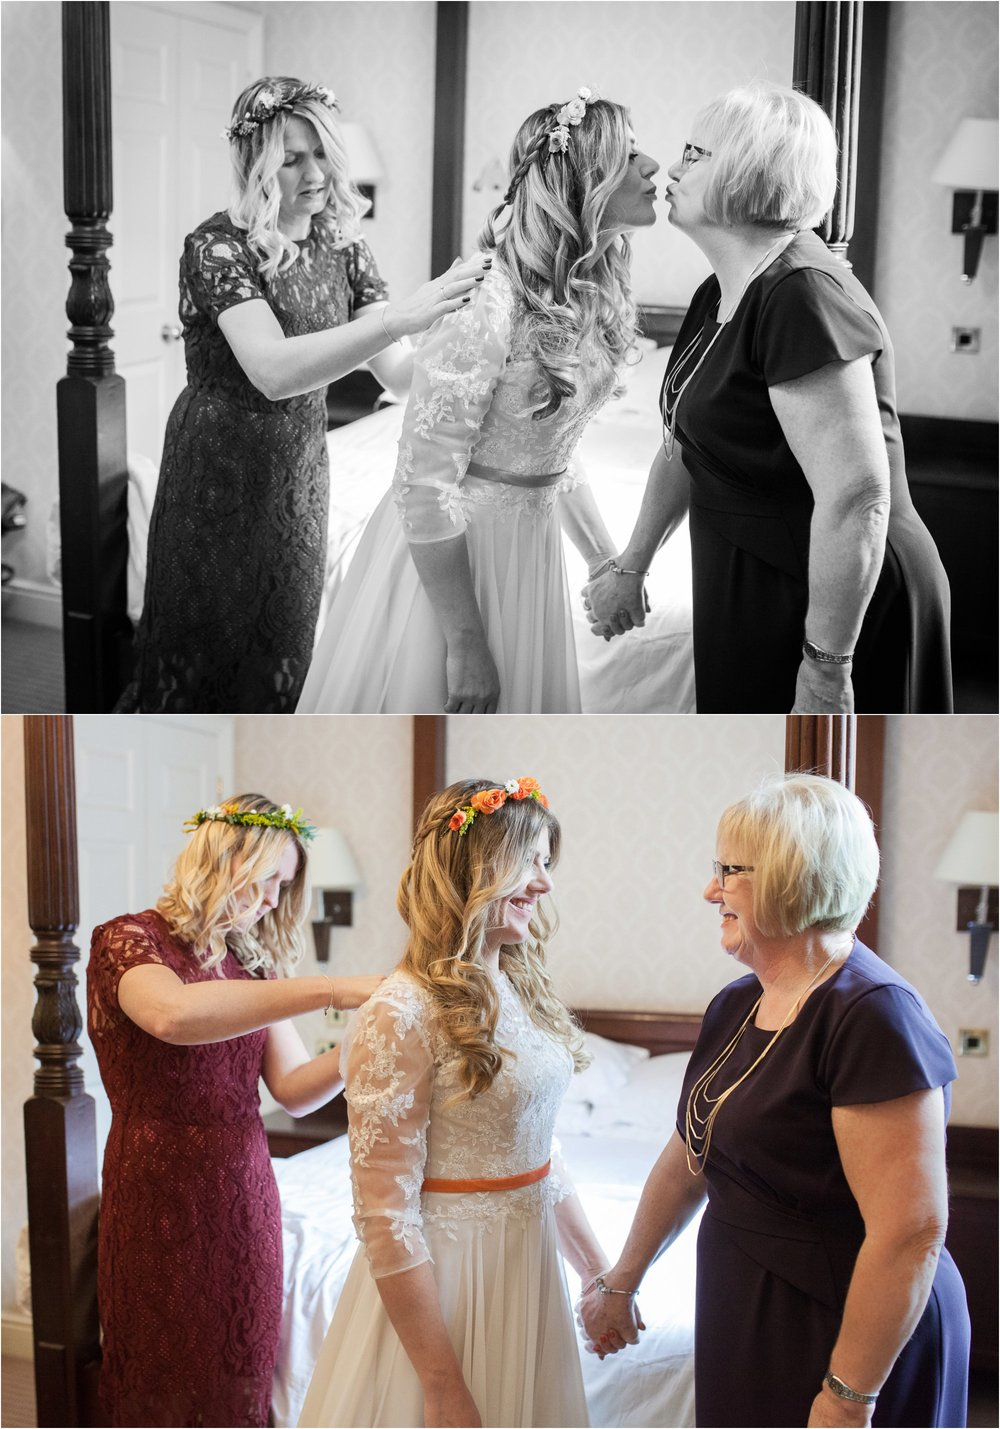 Styal_Wedding_Wilmslow_Cheshire_Autumn_Colourful_photography_0058.jpg